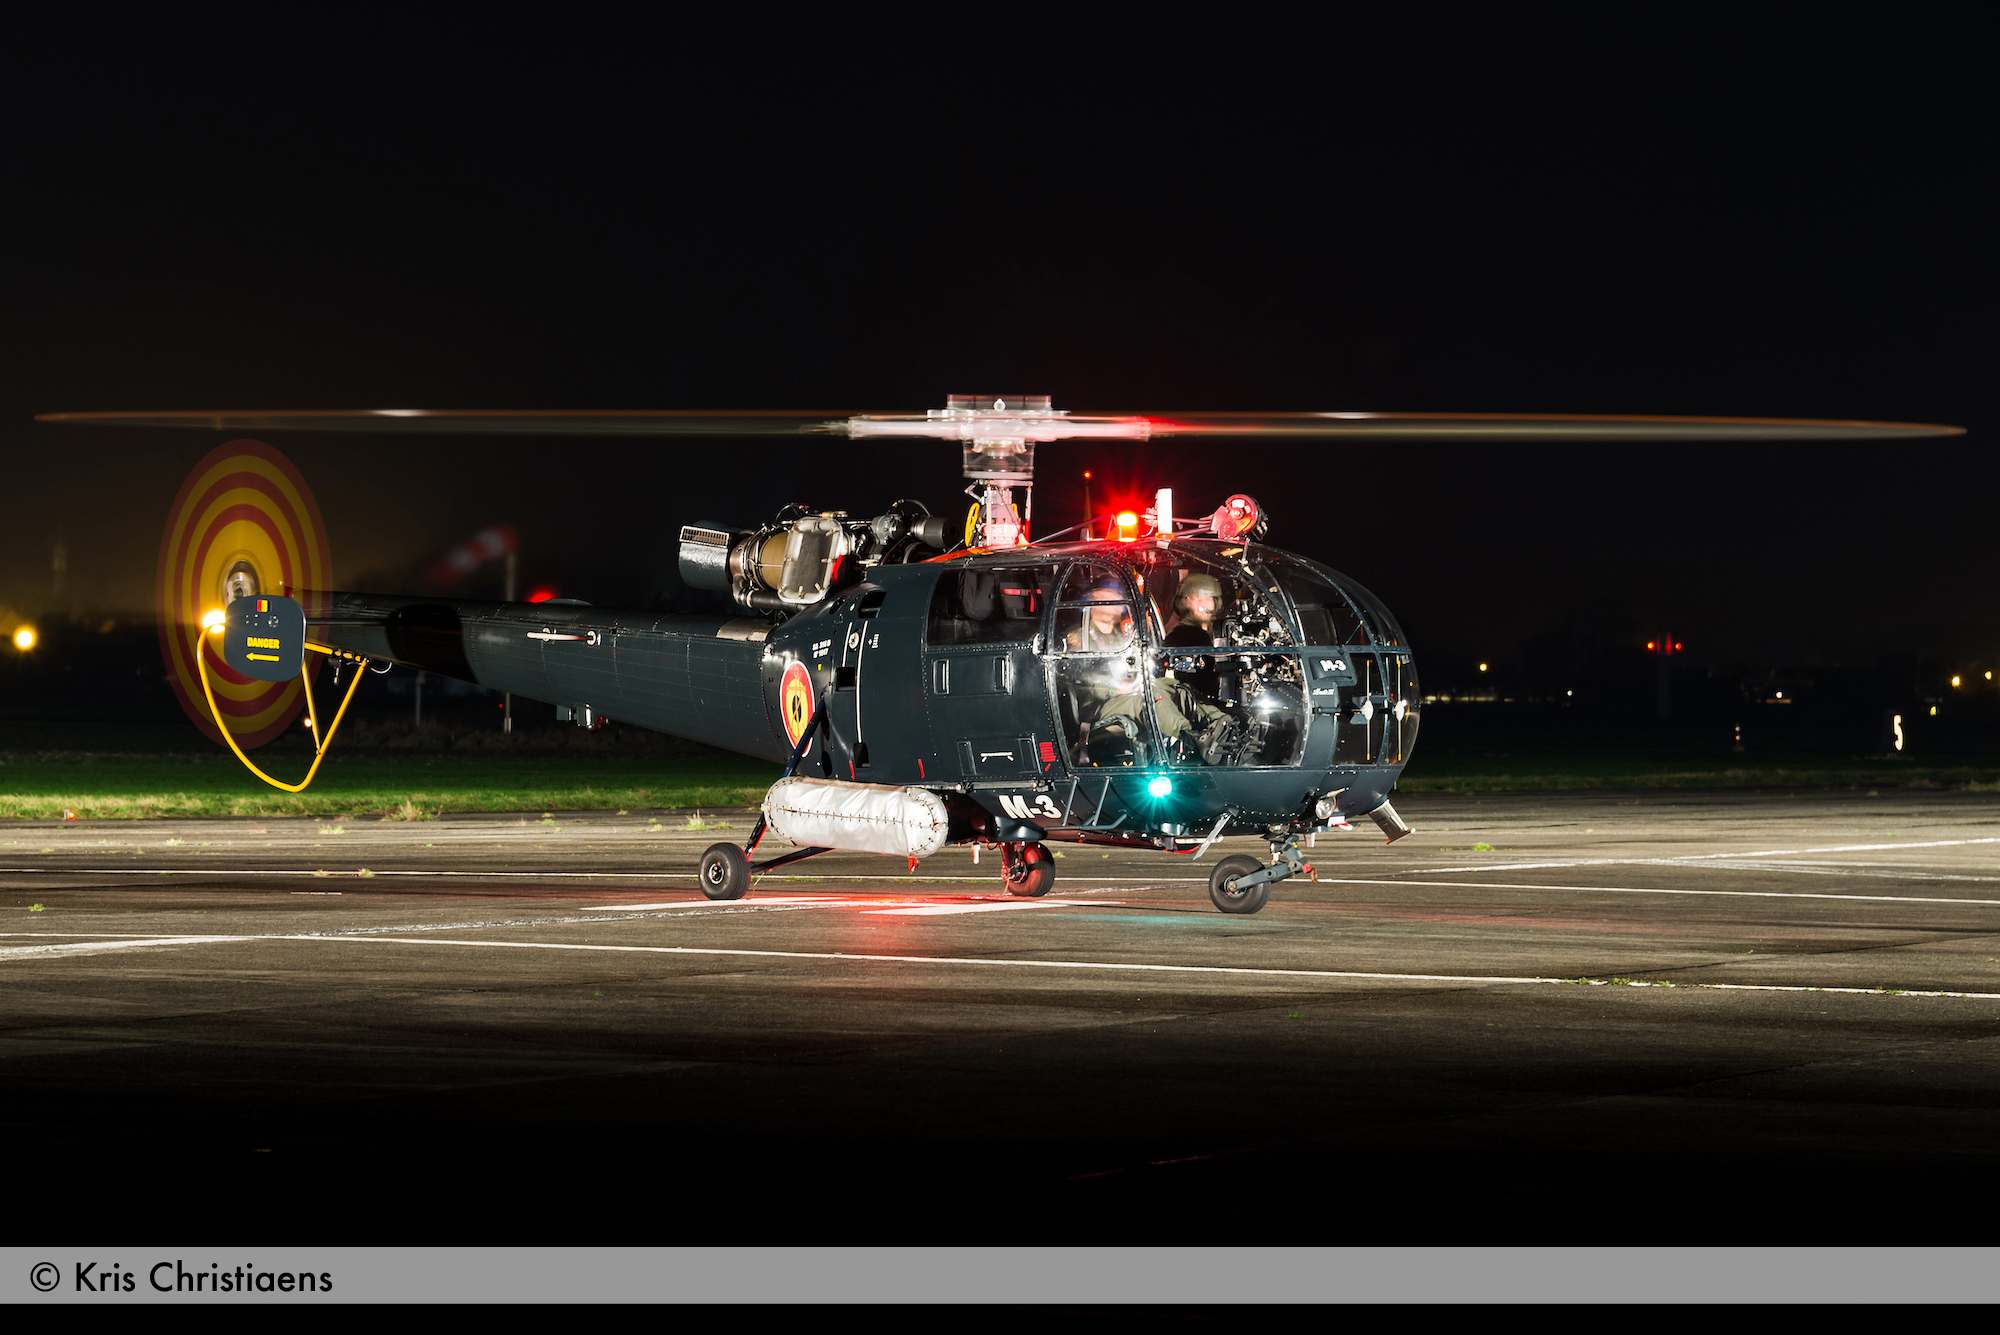 Alouette III (Belgian Air Force)